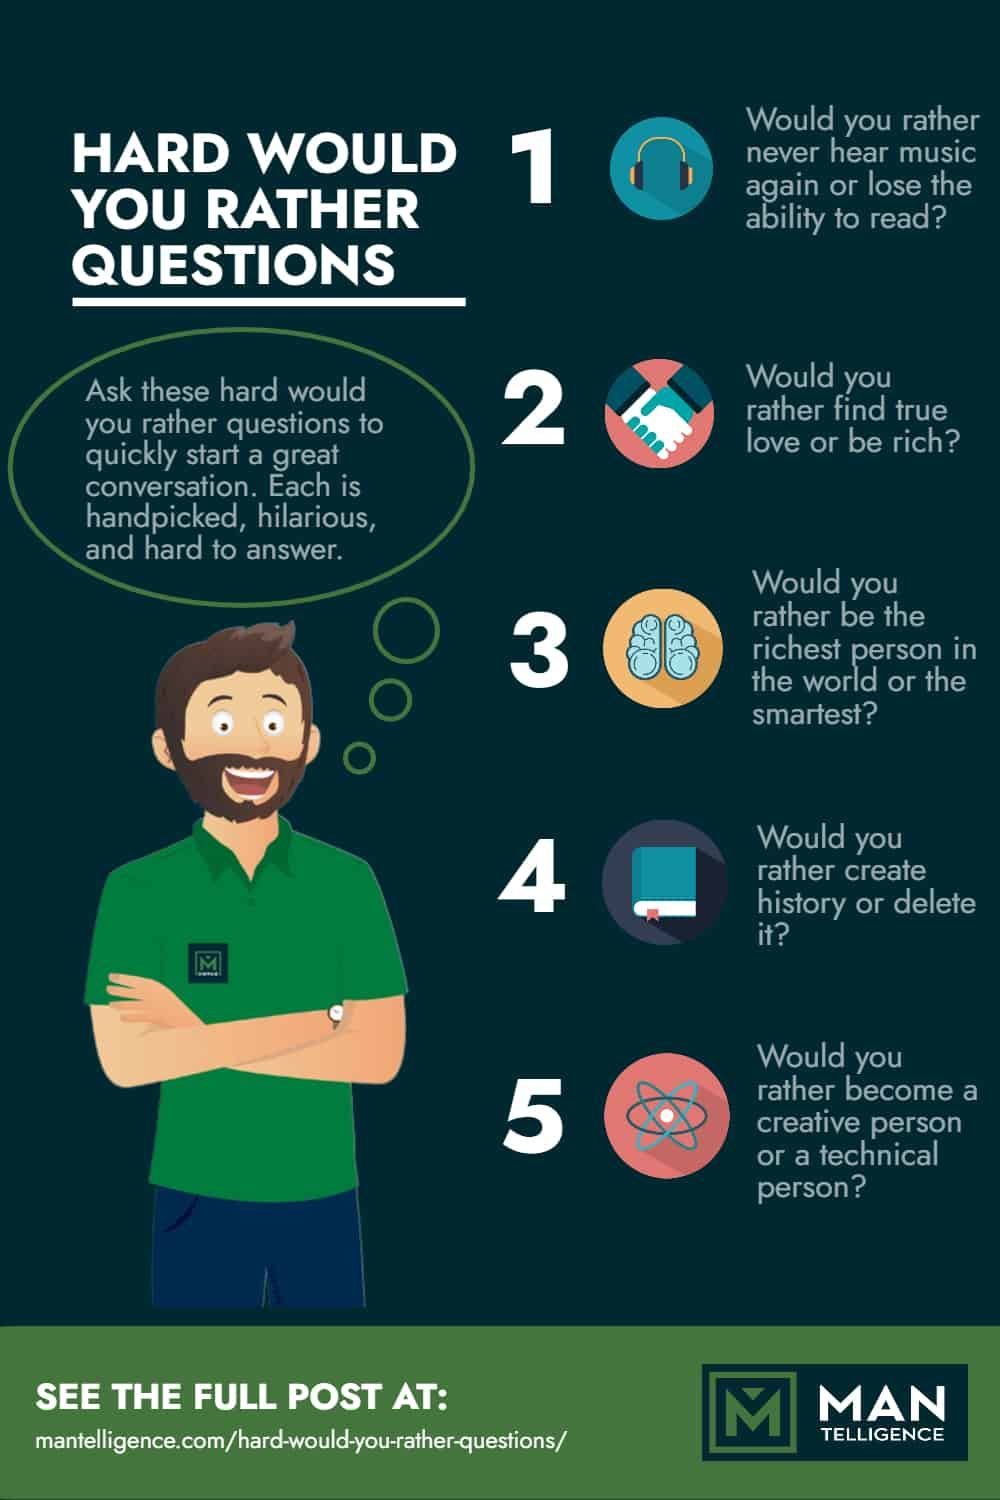 Hard Would You Rather Questions - Infographic